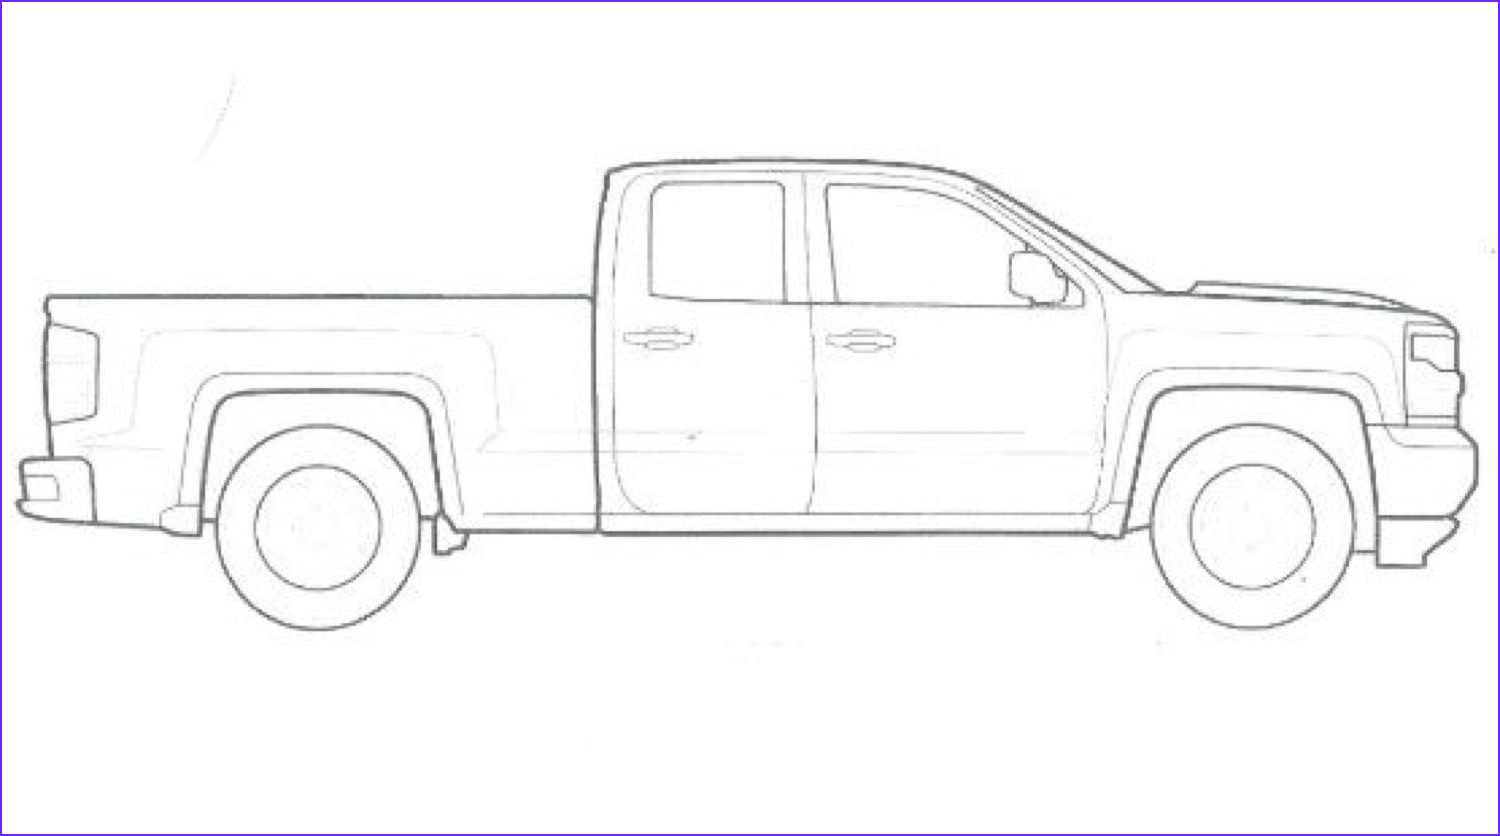 Chevy Coloring Pages Inspirational Photography 2019 Chevrolet Coloring Pages are Fun for the Family